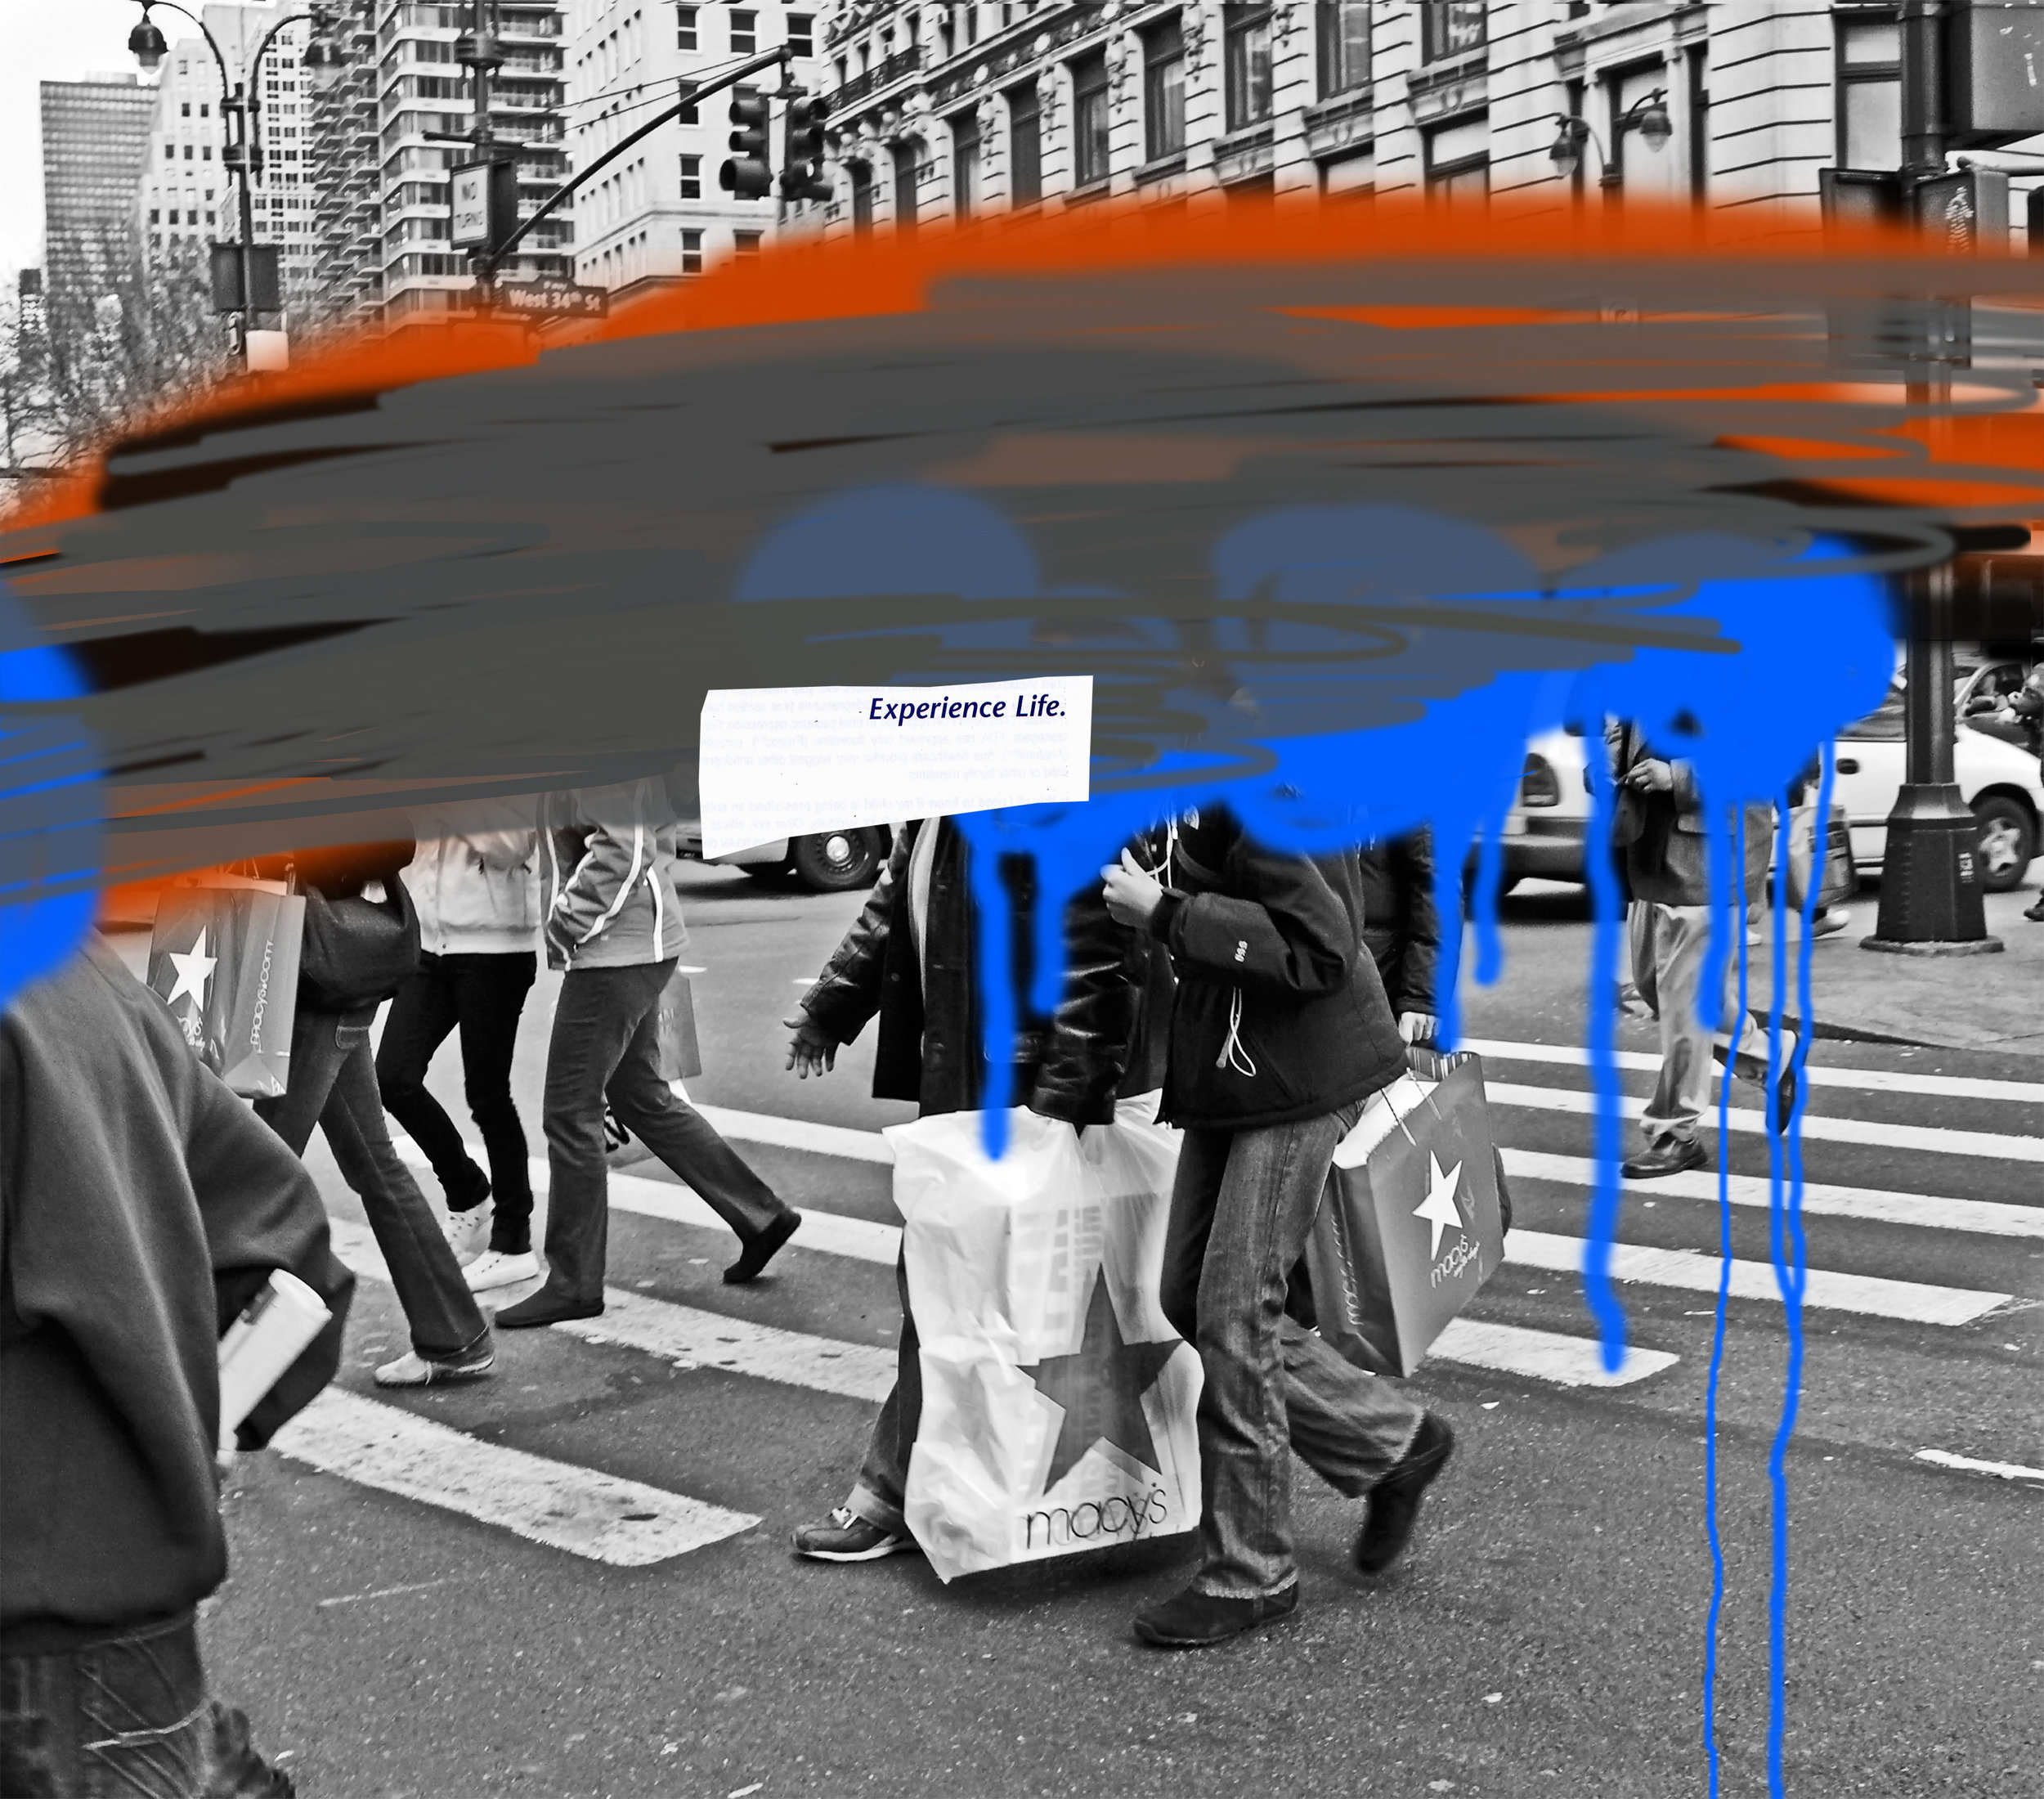 Ester Partegas,  Experience Life , 2007, from the series  We the People ,inkjet ultrachrome archival print, 44 x 50 inches;courtesy of the artist and Foxy Production, New York